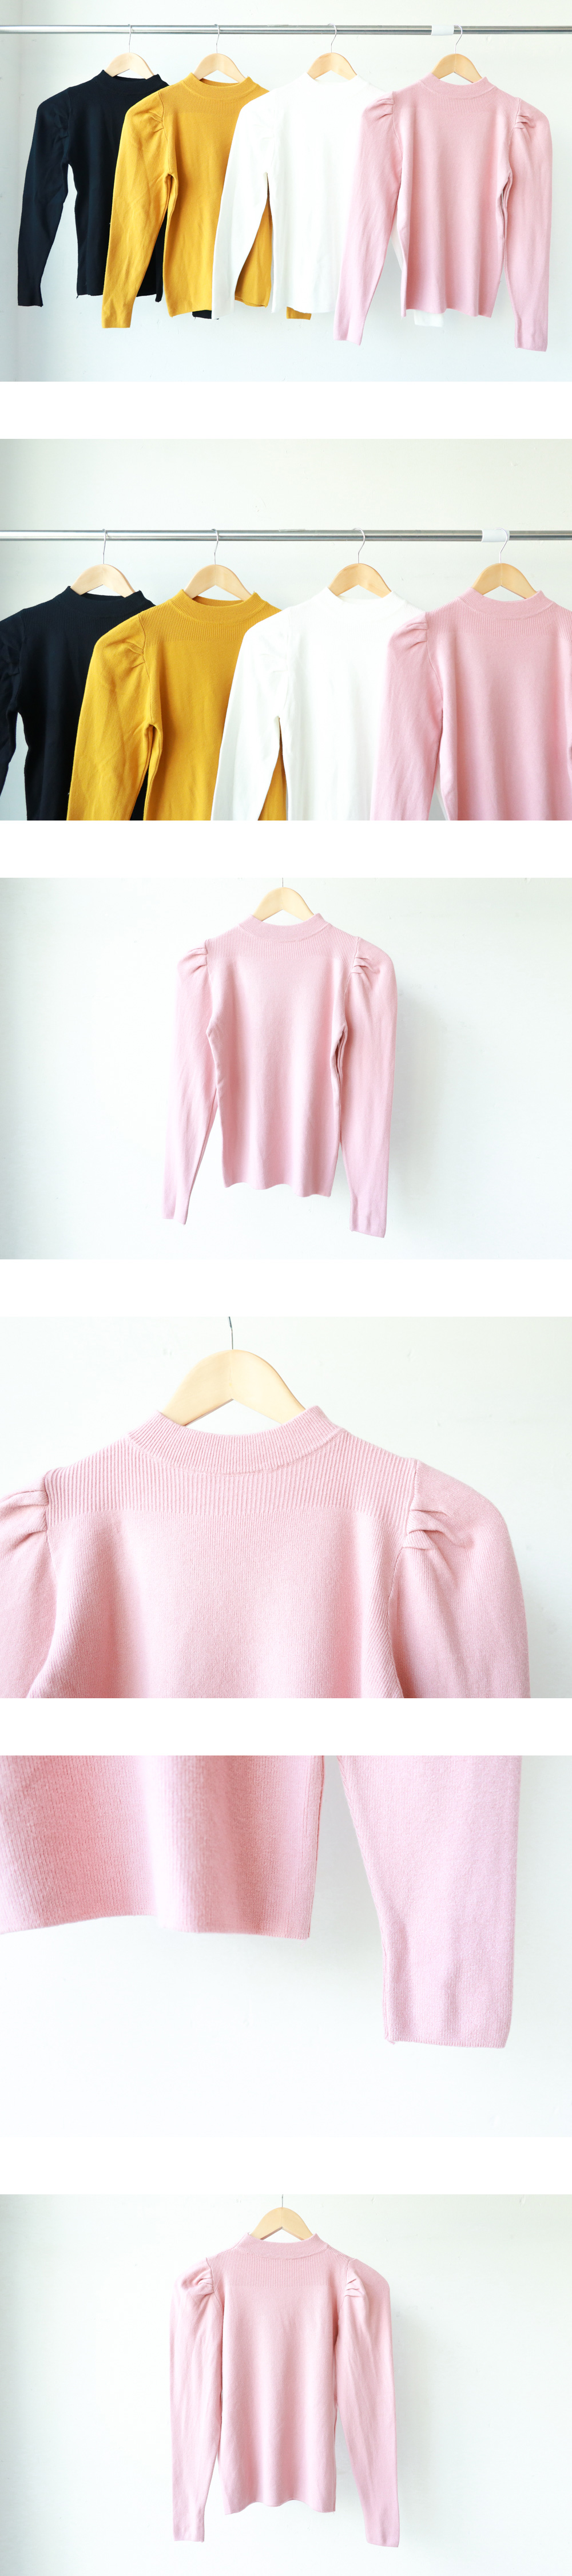 Shoulder shearling knit T-shirt